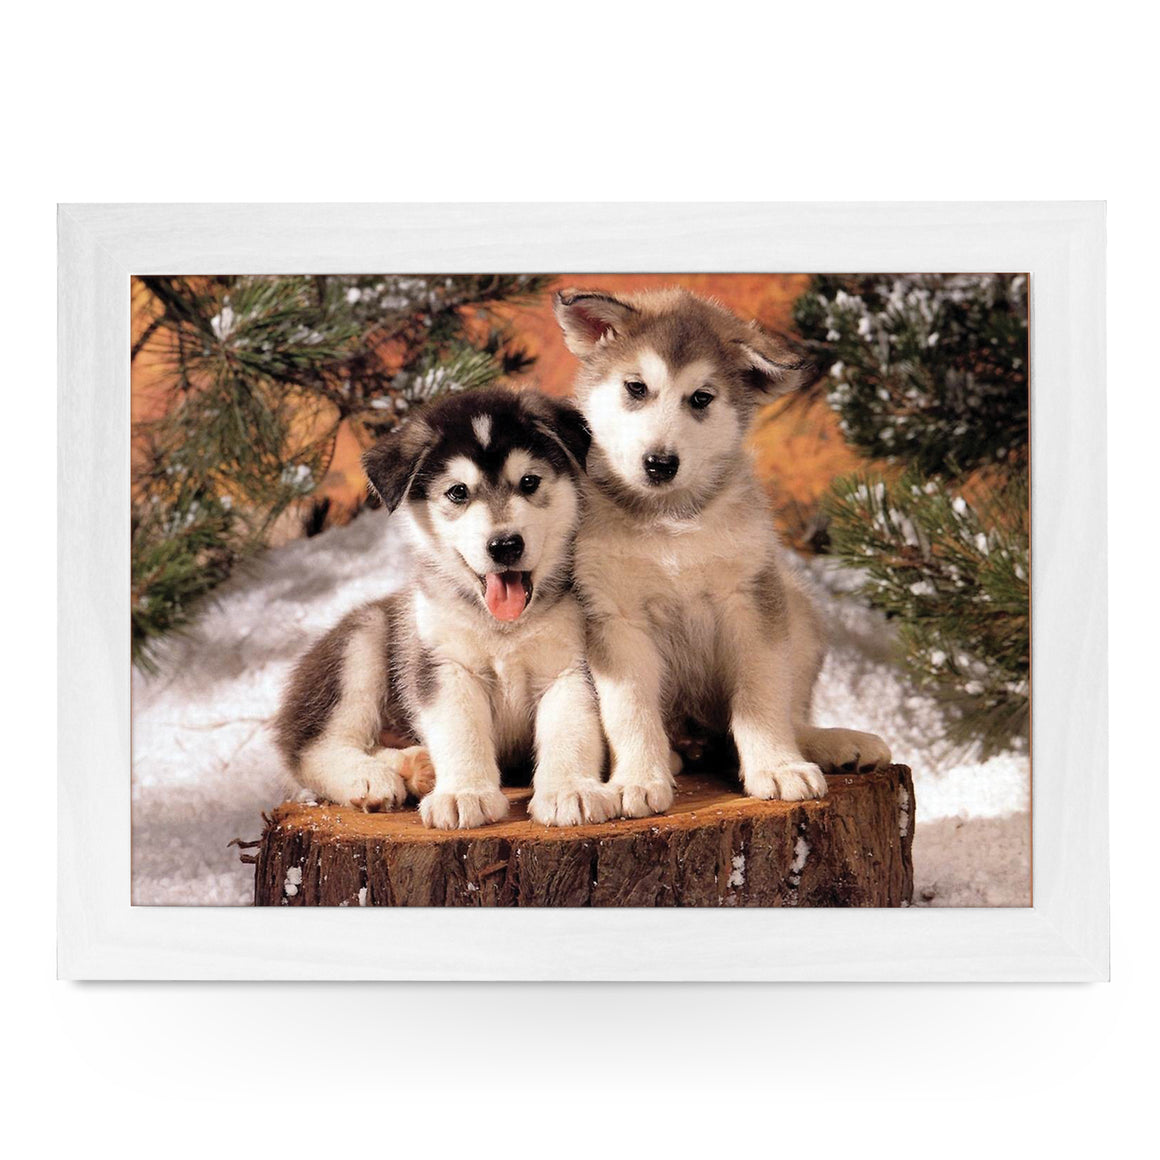 Husky Puppies On Tree Stump Lap Tray - L0371